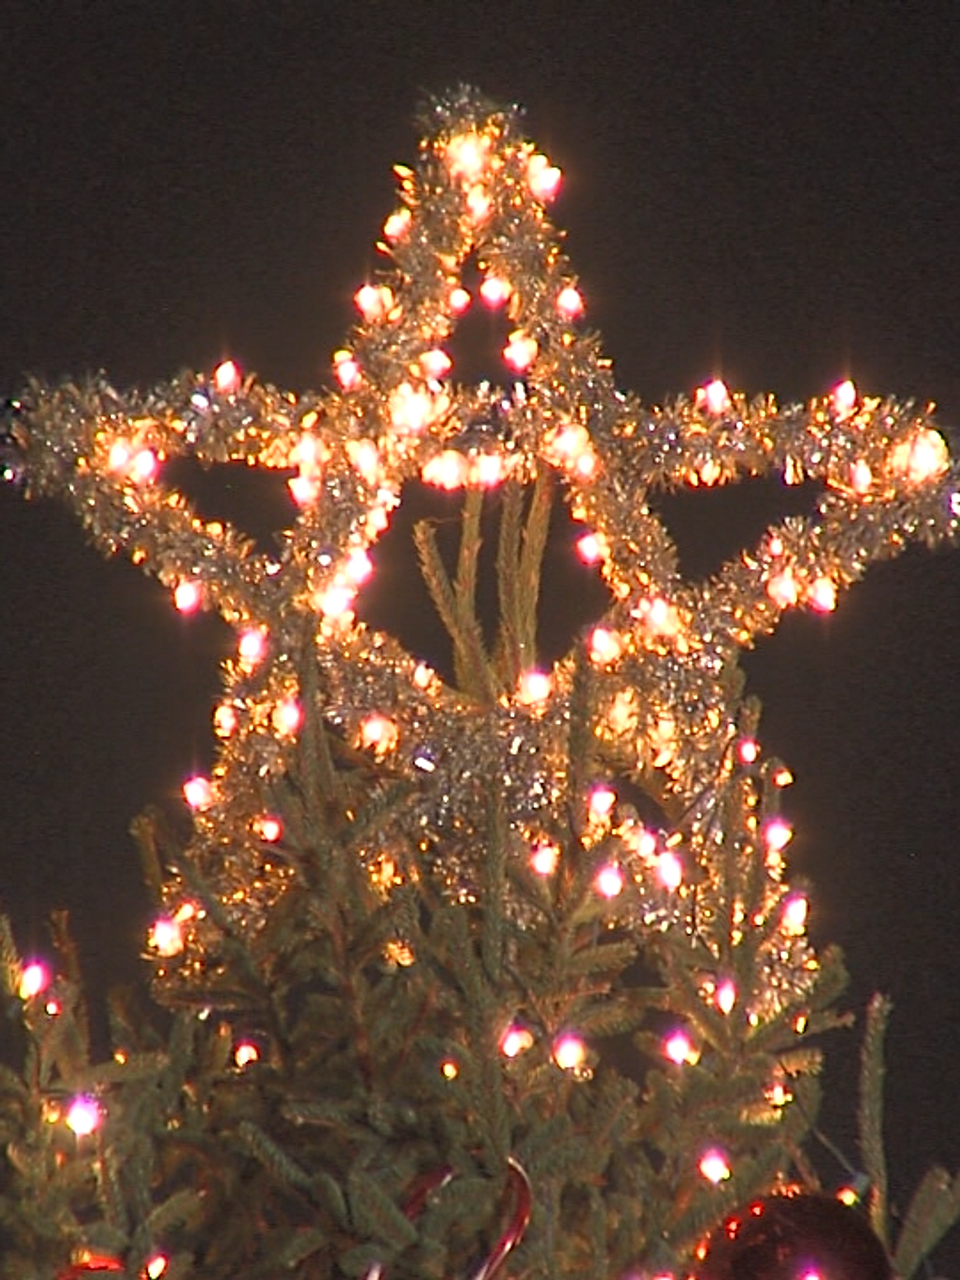 Christmas Village Festival In Birmingham Canceled This Year Due To Pandemic Wbma